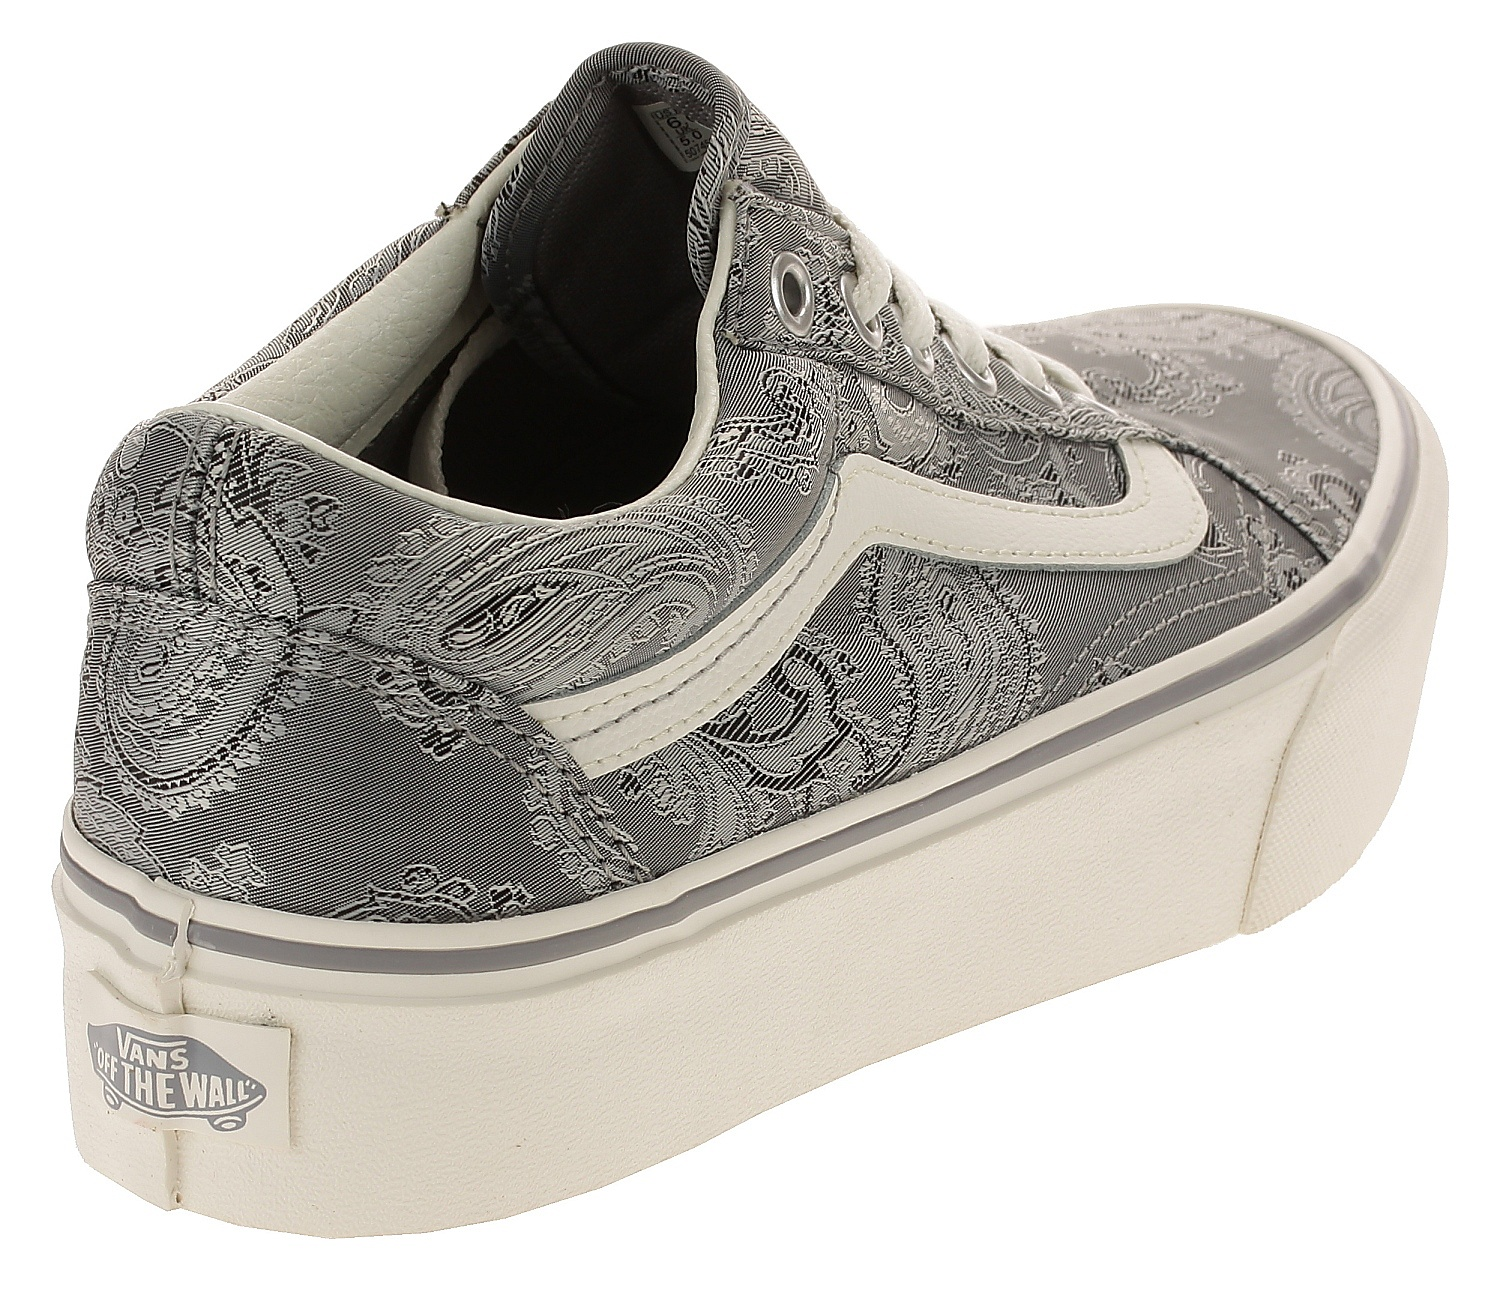 7a0bf37b17f ... shoes Vans Old Skool Platform - Satin Paisley Gray Snow White ...